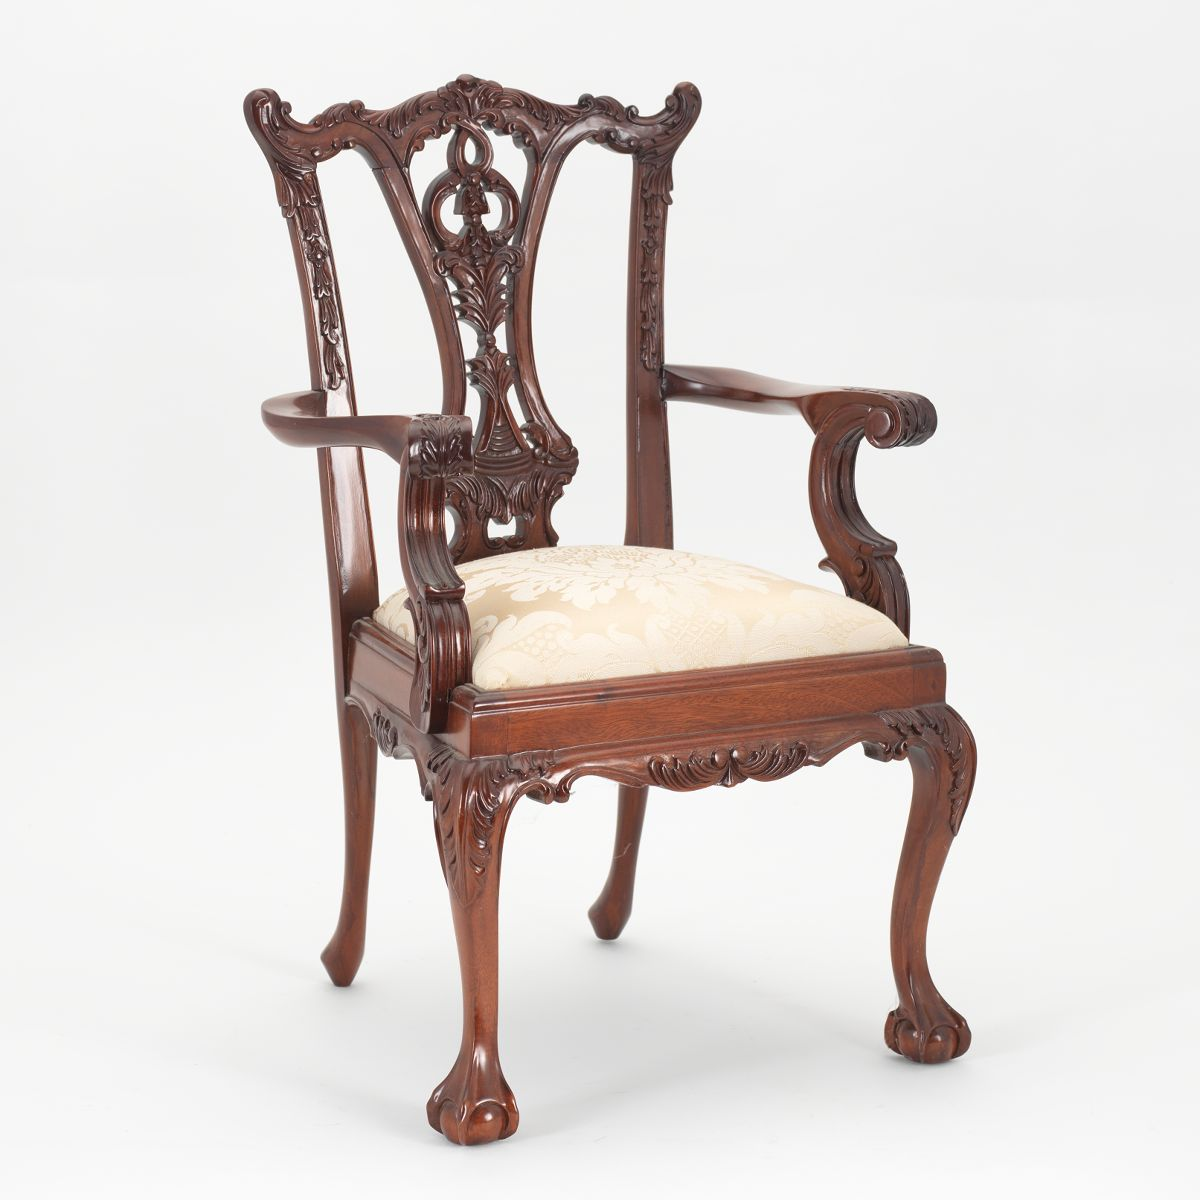 Chippendale arm chair - A Child Size Chippendale Arm Chair